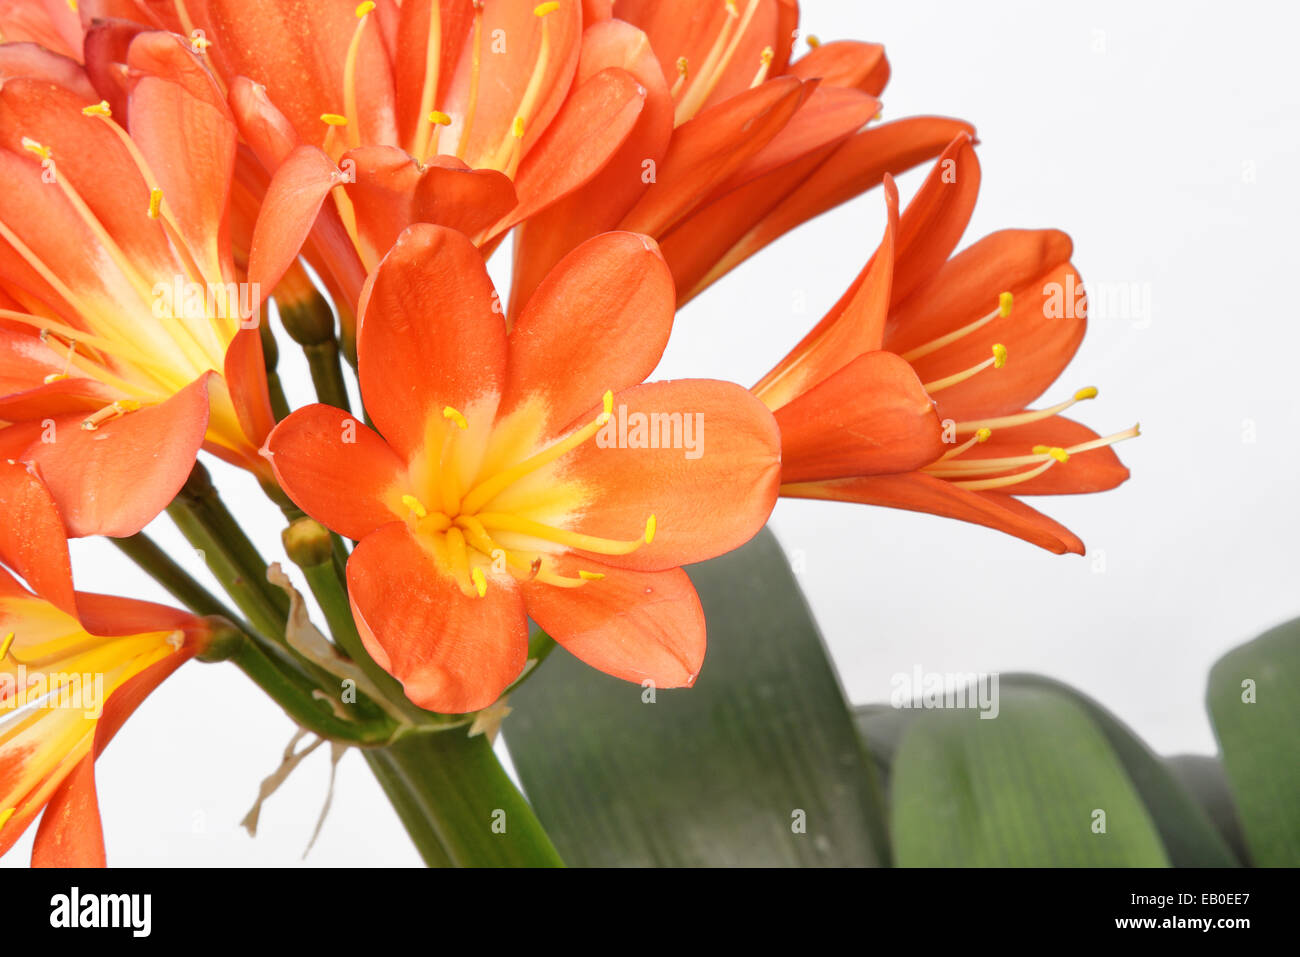 Closeup of Kaffir lily flowers, isolated on white - Stock Image